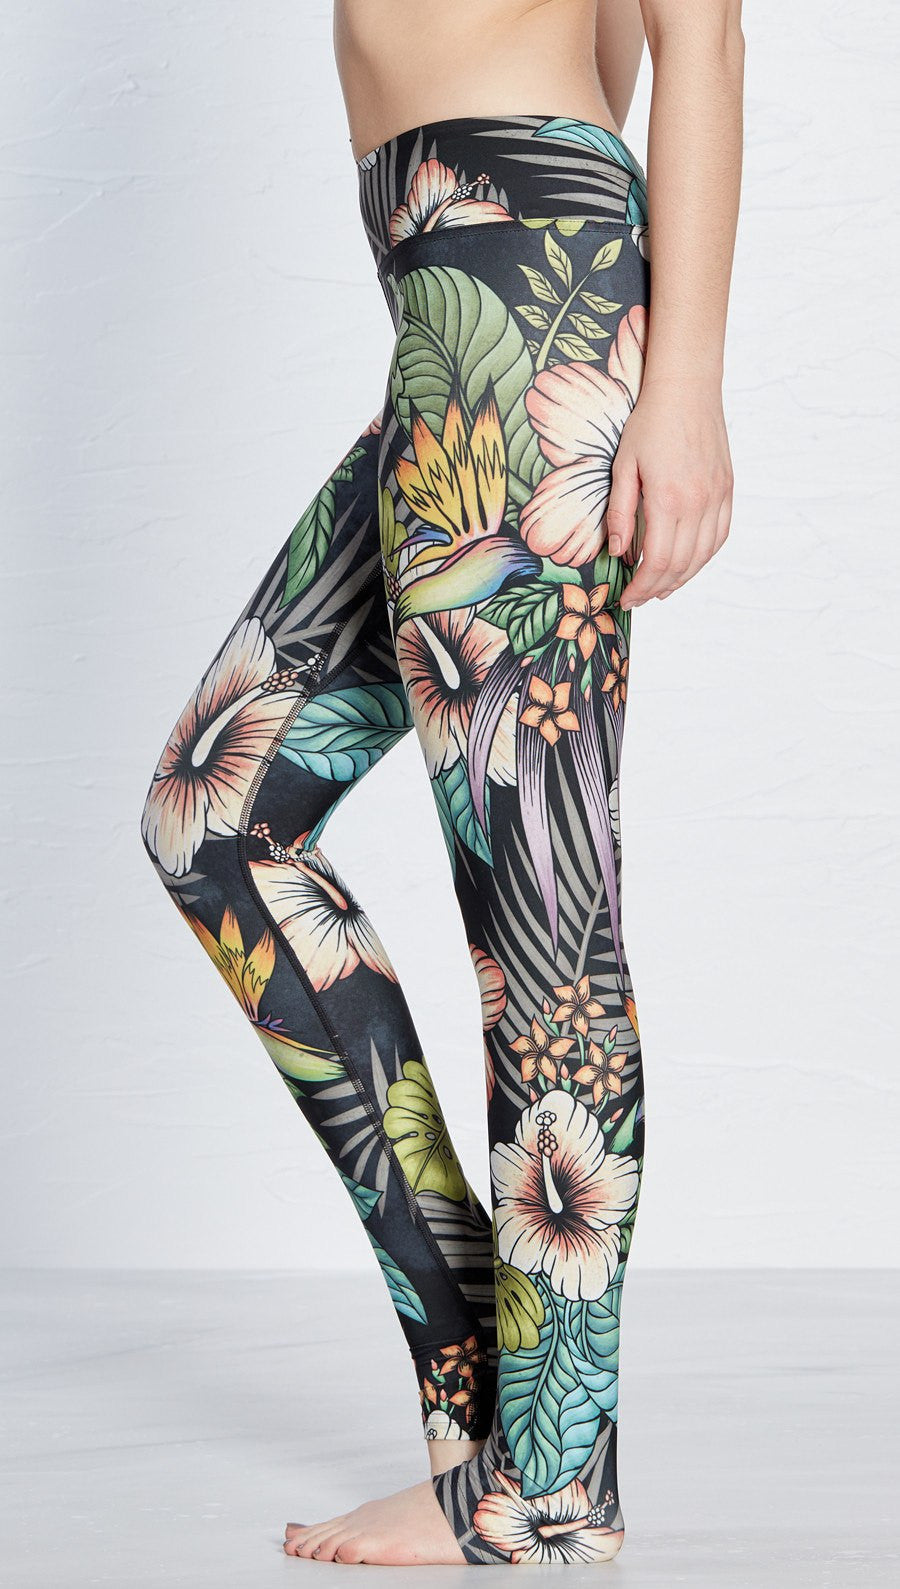 3bea0893f86b close up side view of printed full length leggings with tropical floral  design and black background